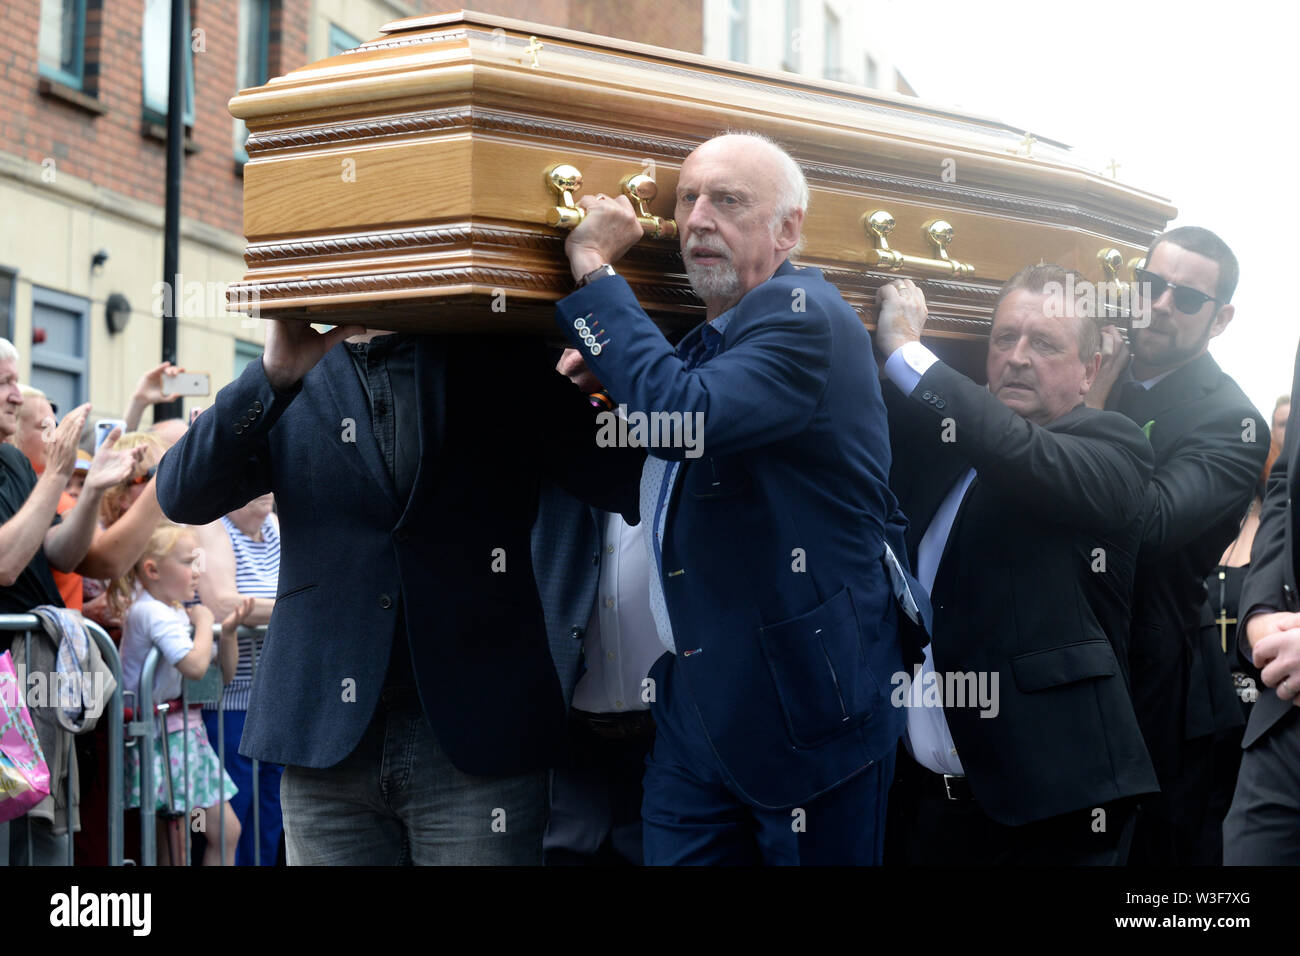 The coffin of Father Ted star Brendan Grace is carried into the Church of St. Nicholas of Myra, Dublin. - Stock Image